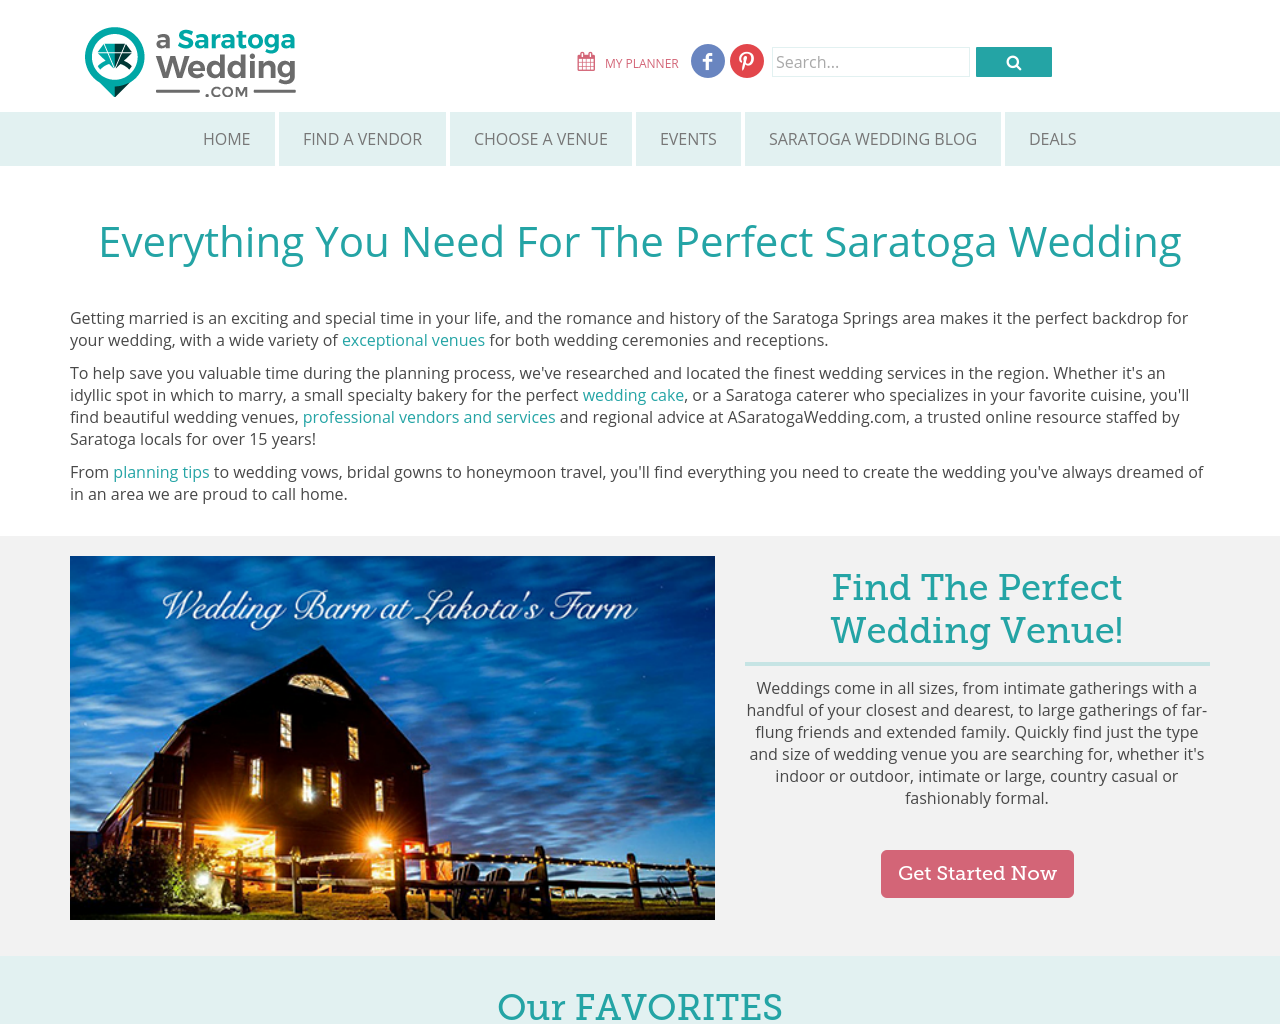 A-SARATOGA-WEDDING.COM-Advertising-Reviews-Pricing